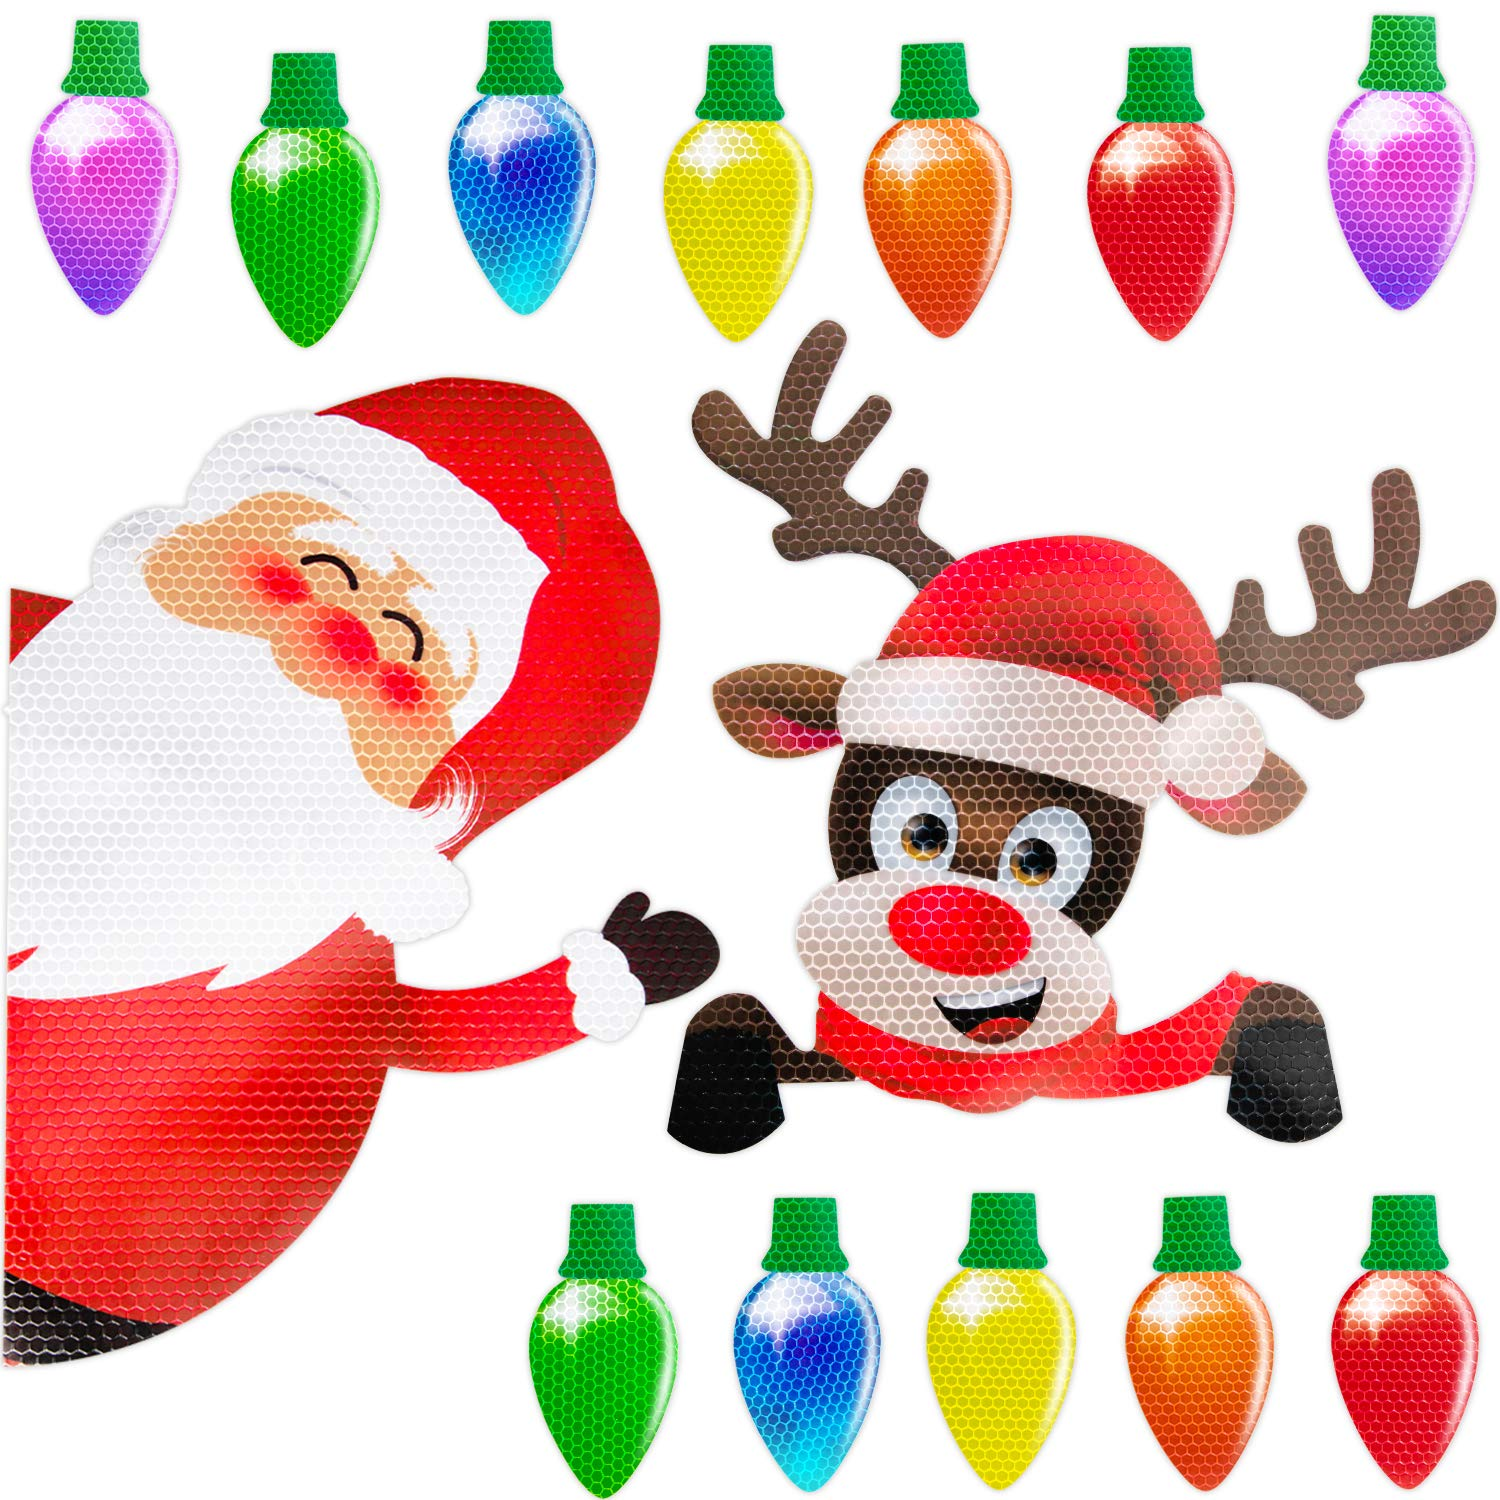 Christmas Car Refrigerator Decorations Reflective Bulb Light Santa Reindeer Magnet Accessories Set Xmas Holiday Cute Decor